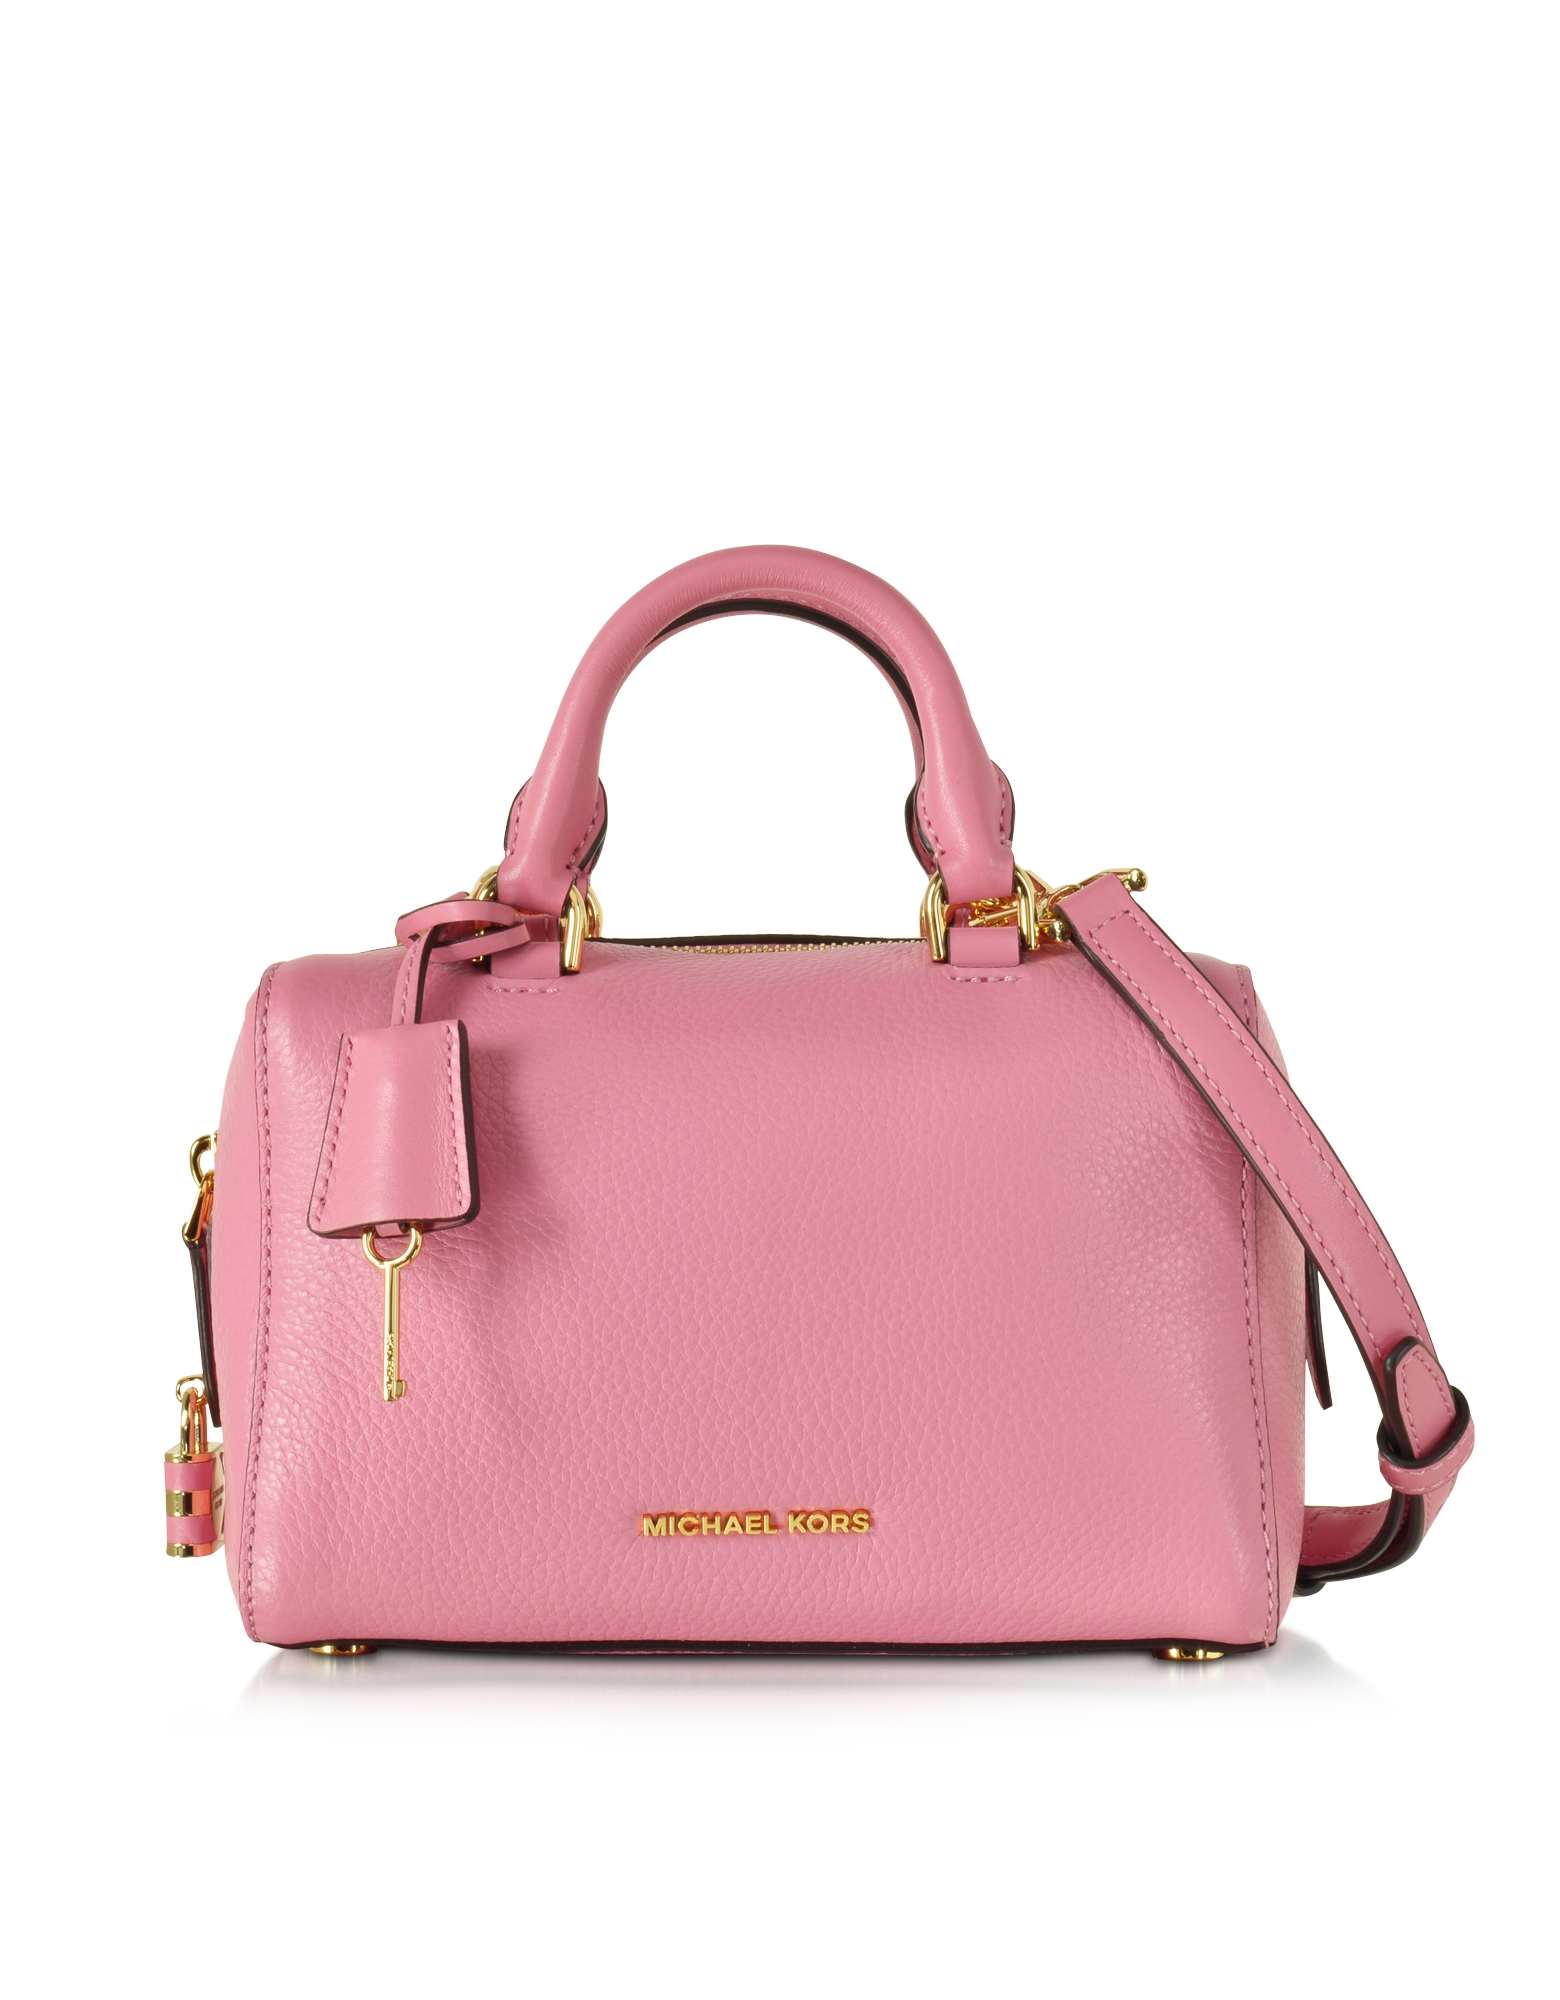 Michael kors Kirby Misty Rose Xs Leather Satchel Bag in Pink | Lyst